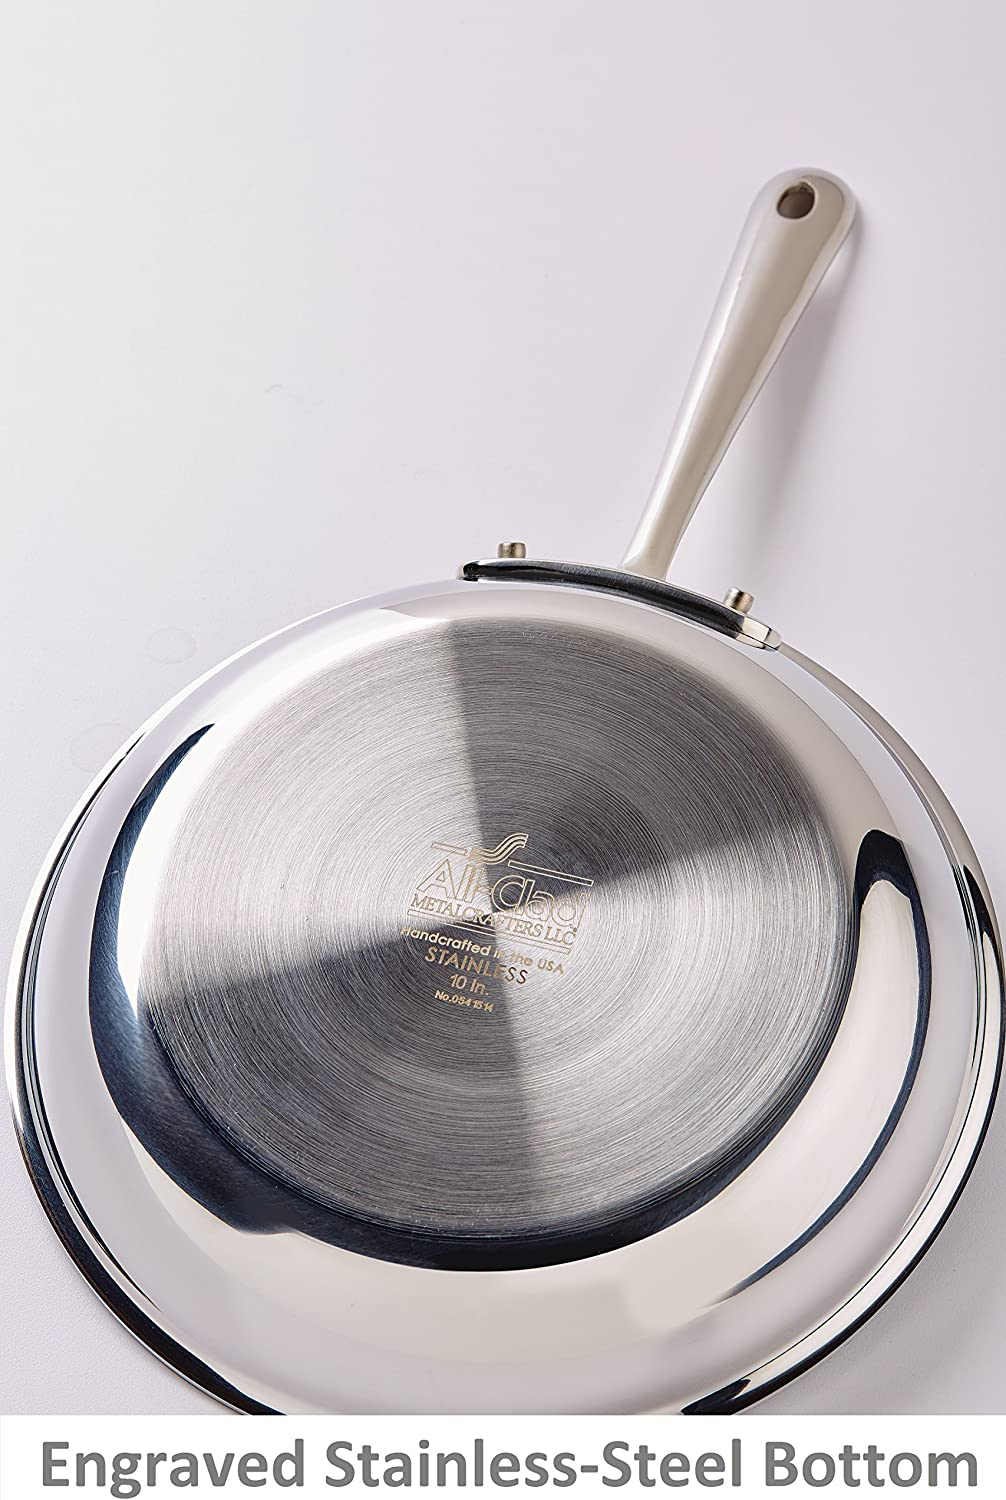 Silver All-Clad 4110 Stainless Steel Tri-Ply Bonded Dishwasher Safe Fry Pan Cookware 10-Inch